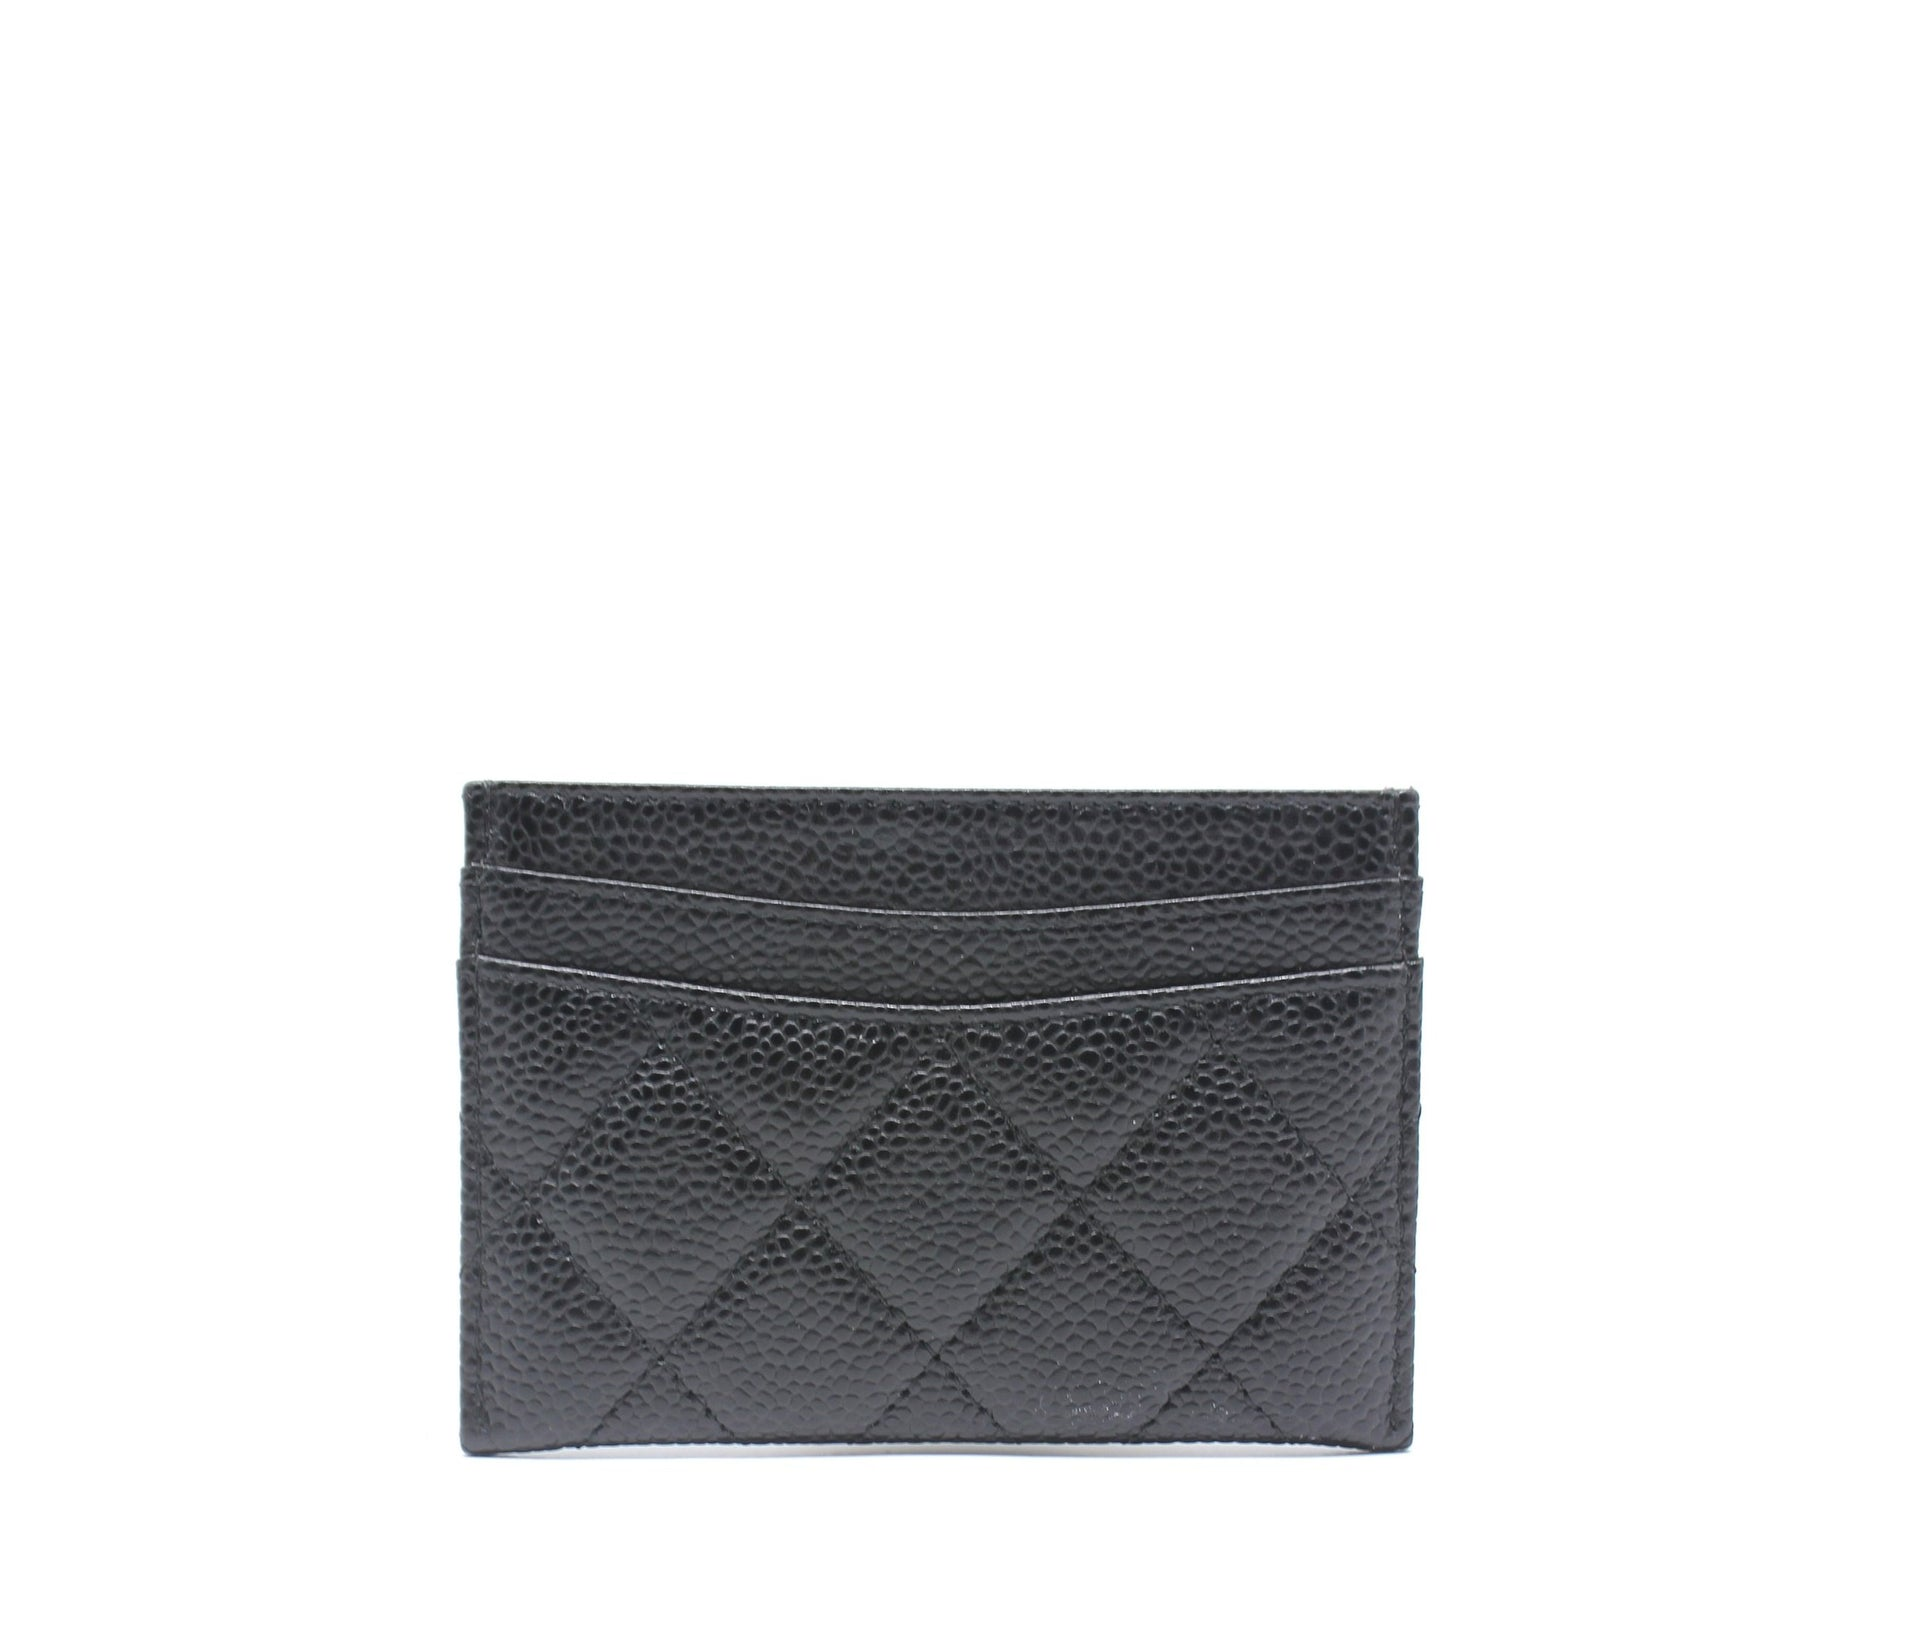 Chanel Caviar Quilted Card Holder Black